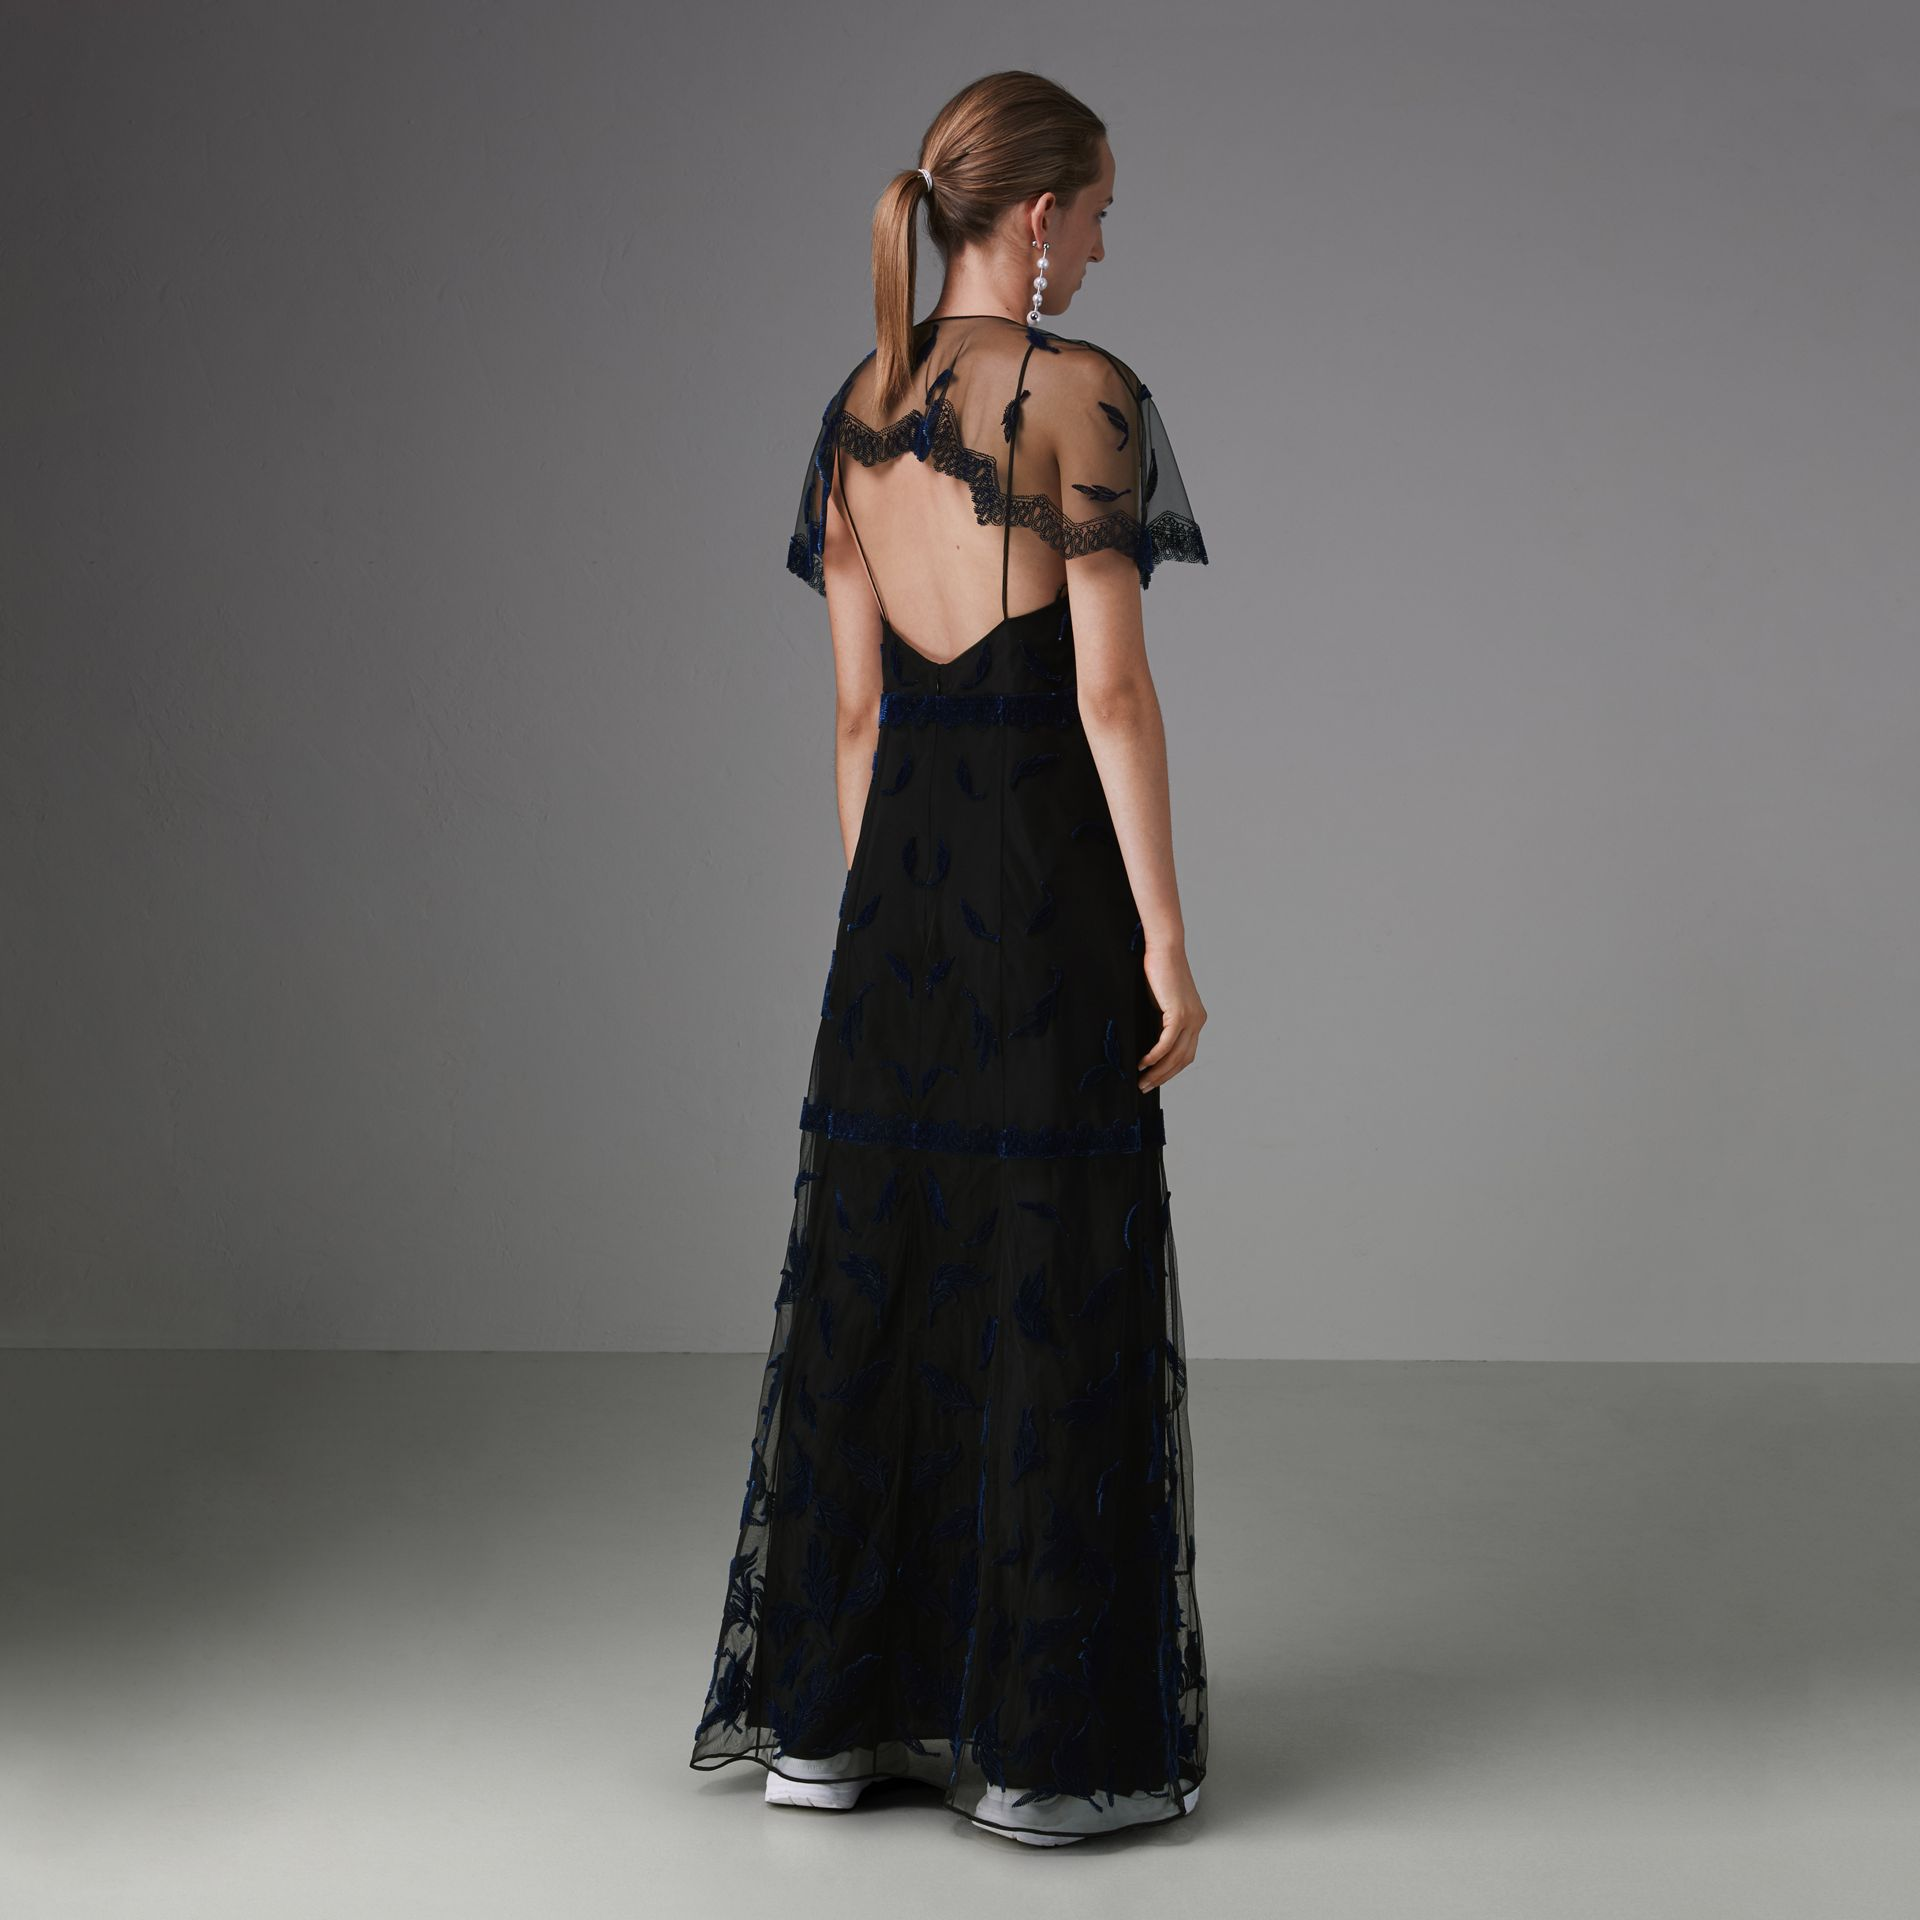 Velvet Leaf Cap-sleeve Gown in Black/blue - Women | Burberry - gallery image 2